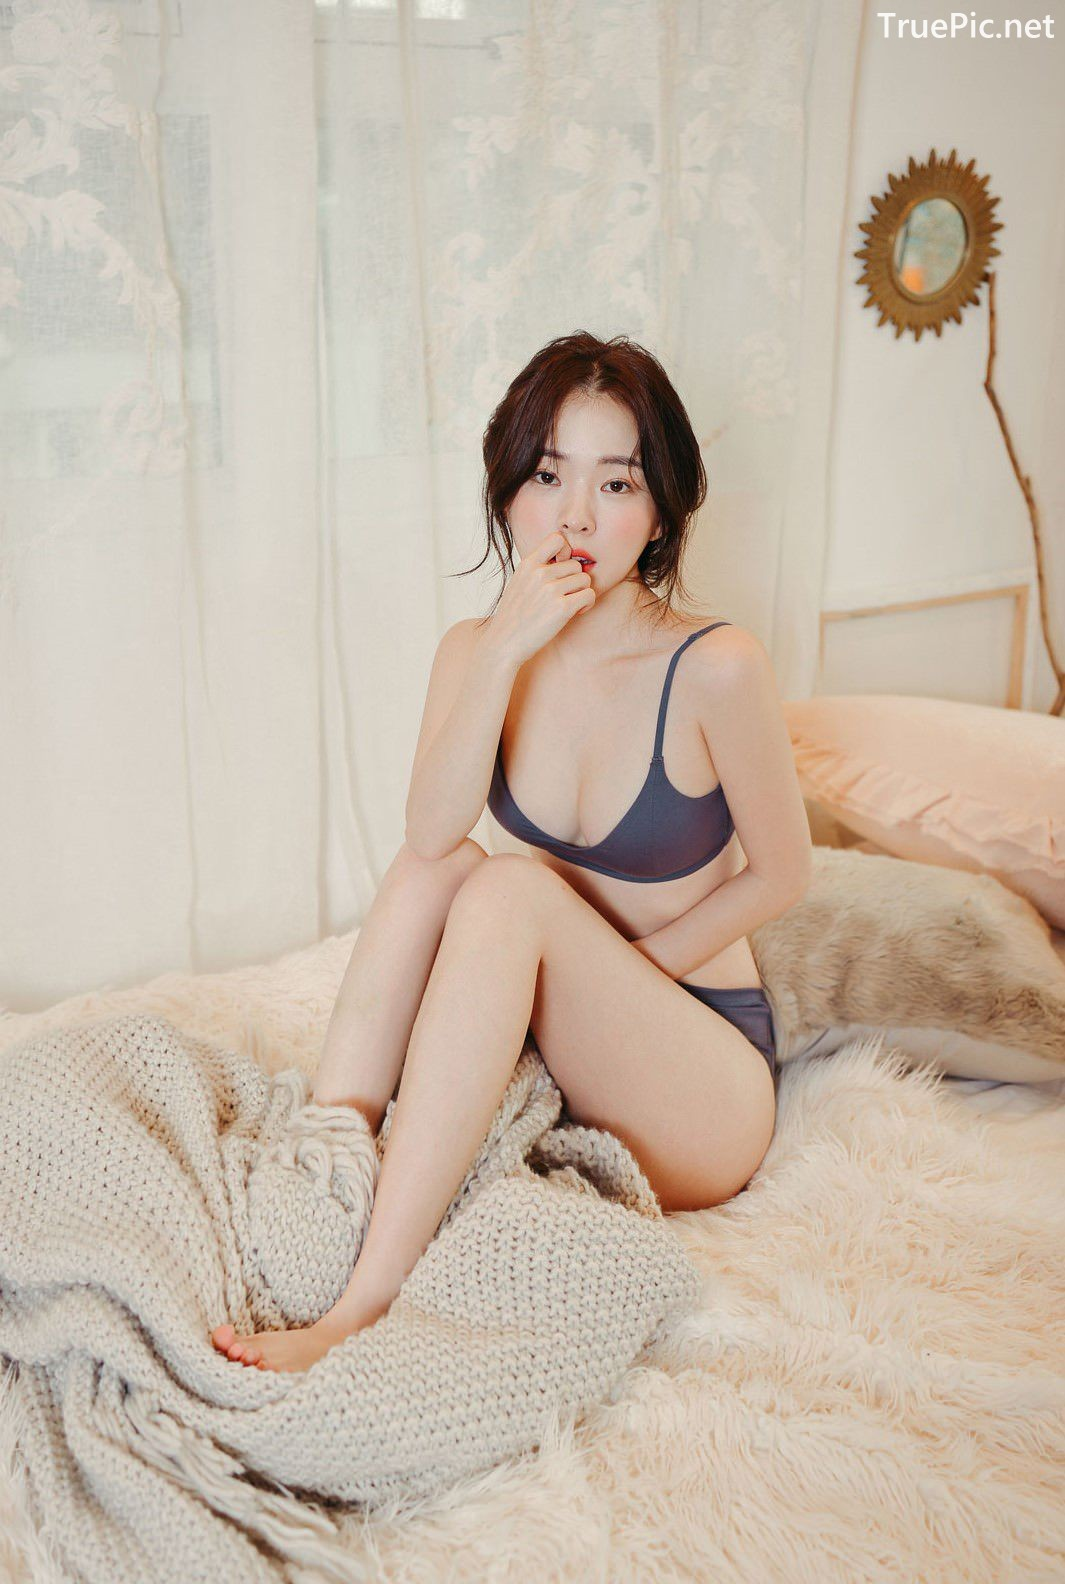 Image-Korean-Lingerie-Queen-Haneul-Lingerie-Shop-Haneul-Colection-TruePic.net- Picture-4